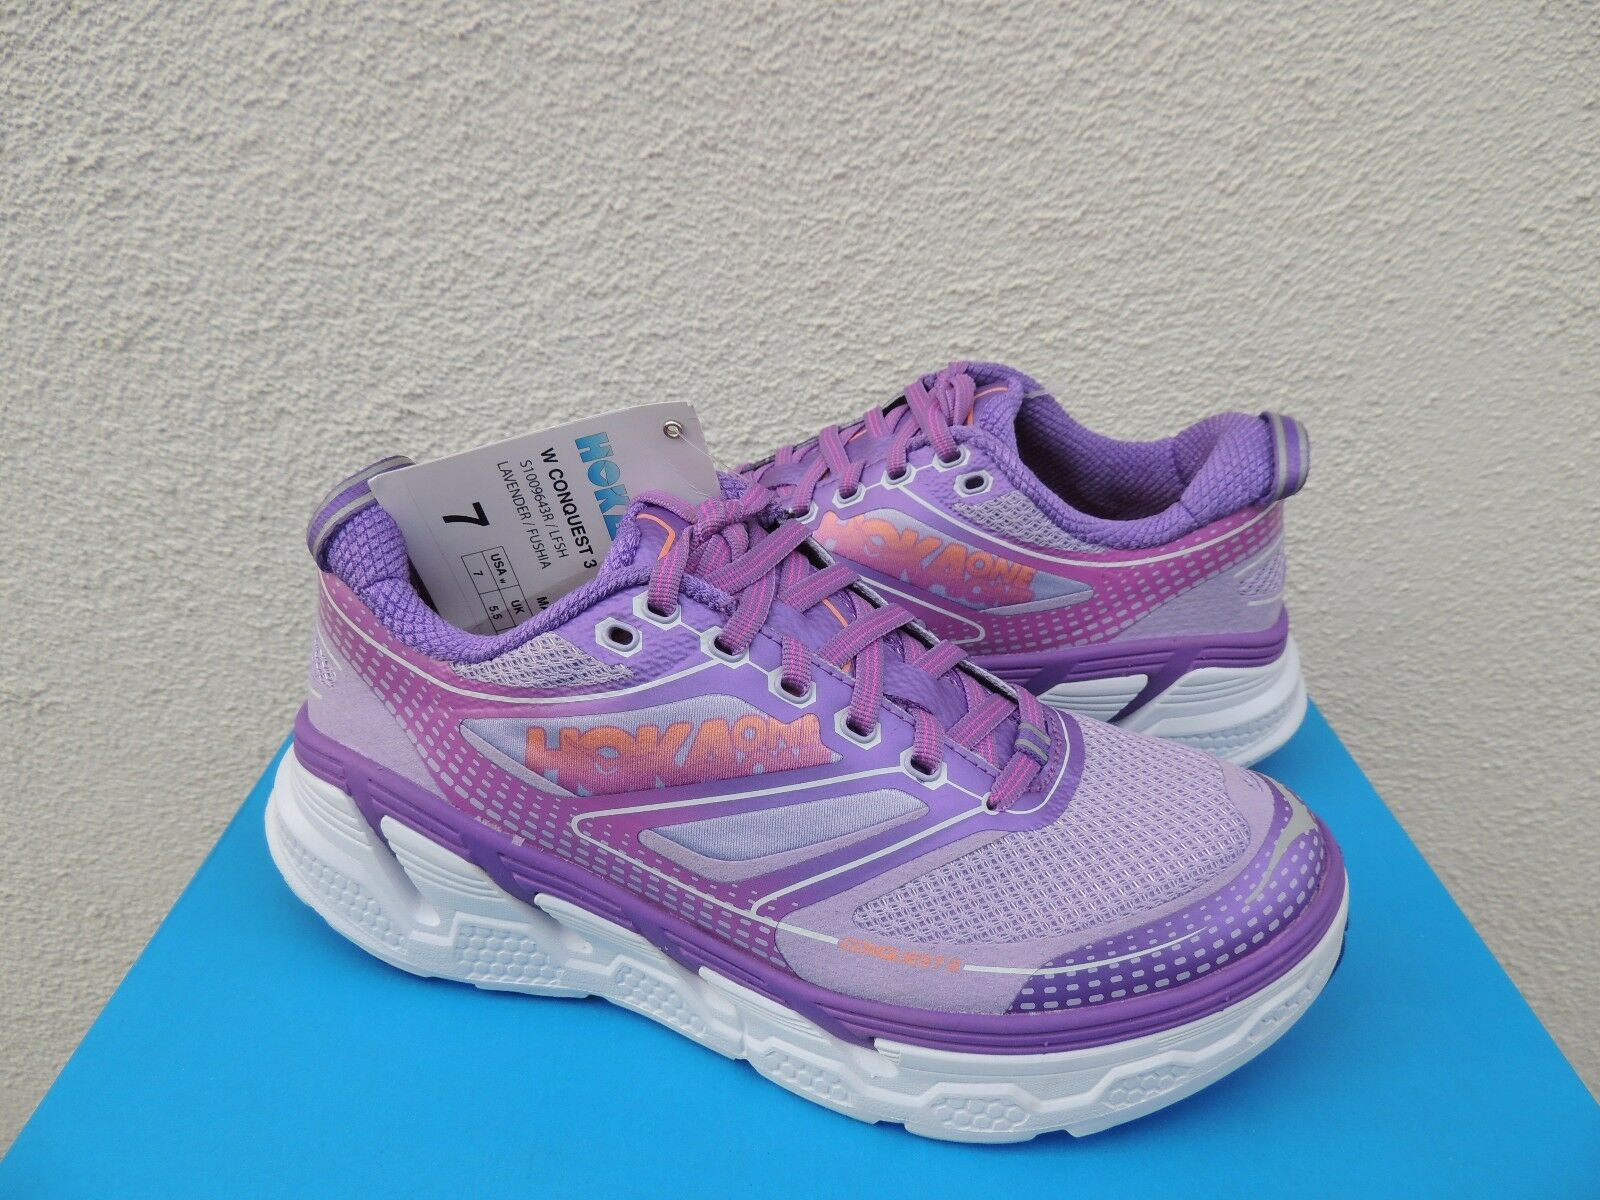 HOKA ONE ONE CONQUEST 3 LAVENDER  FUCHSIA RUNNING SHOES, US 7  EUR 38 2 3   NWT